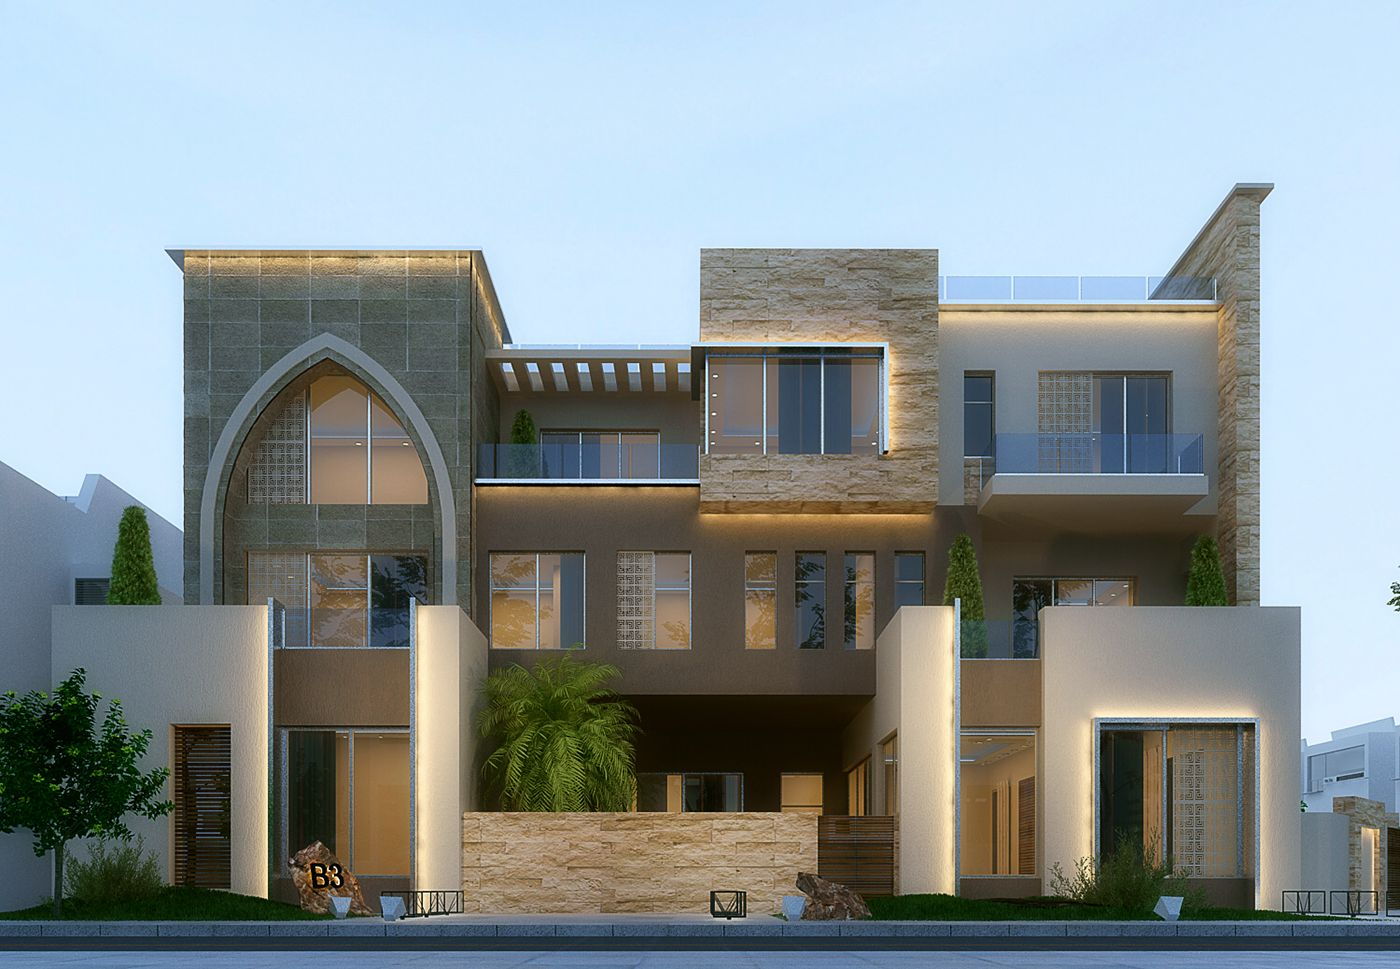 Villa In Kuwait On Behance House Front Design House Architecture Styles Classic House Exterior